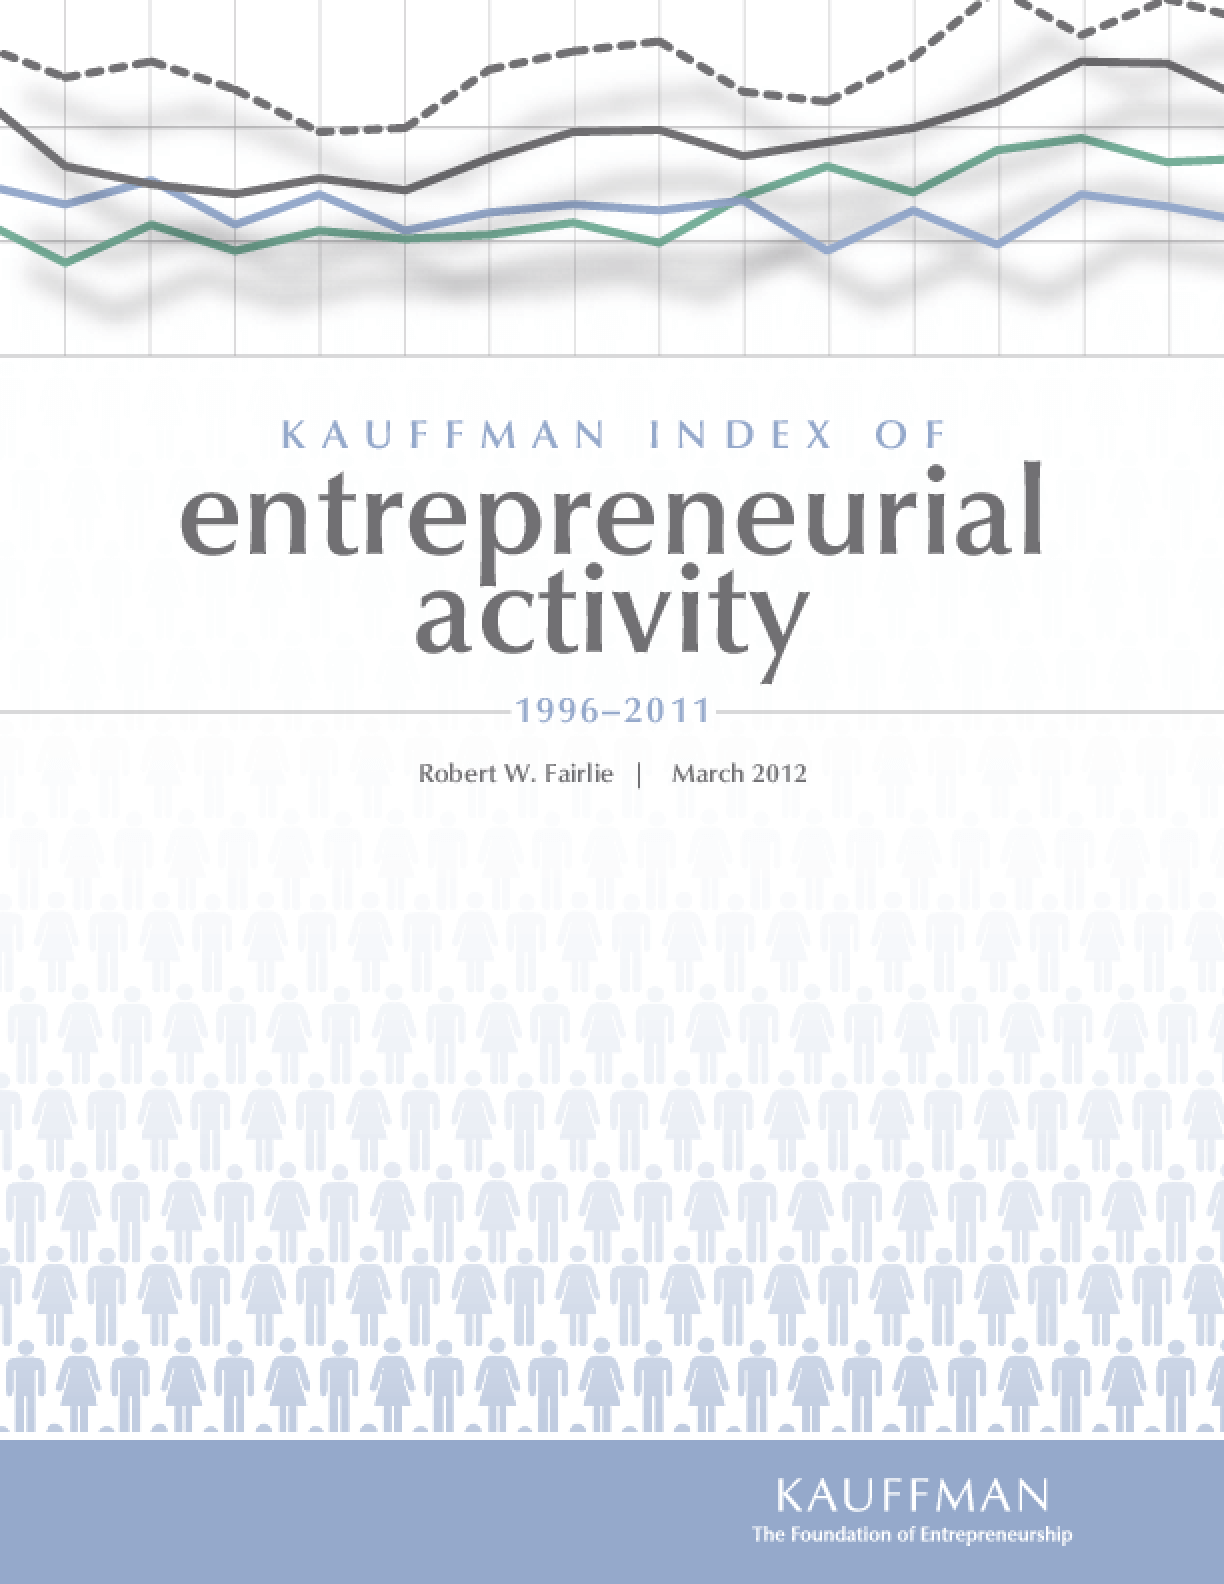 Kauffman Index of Entrepreneurial Activity 1996-2011